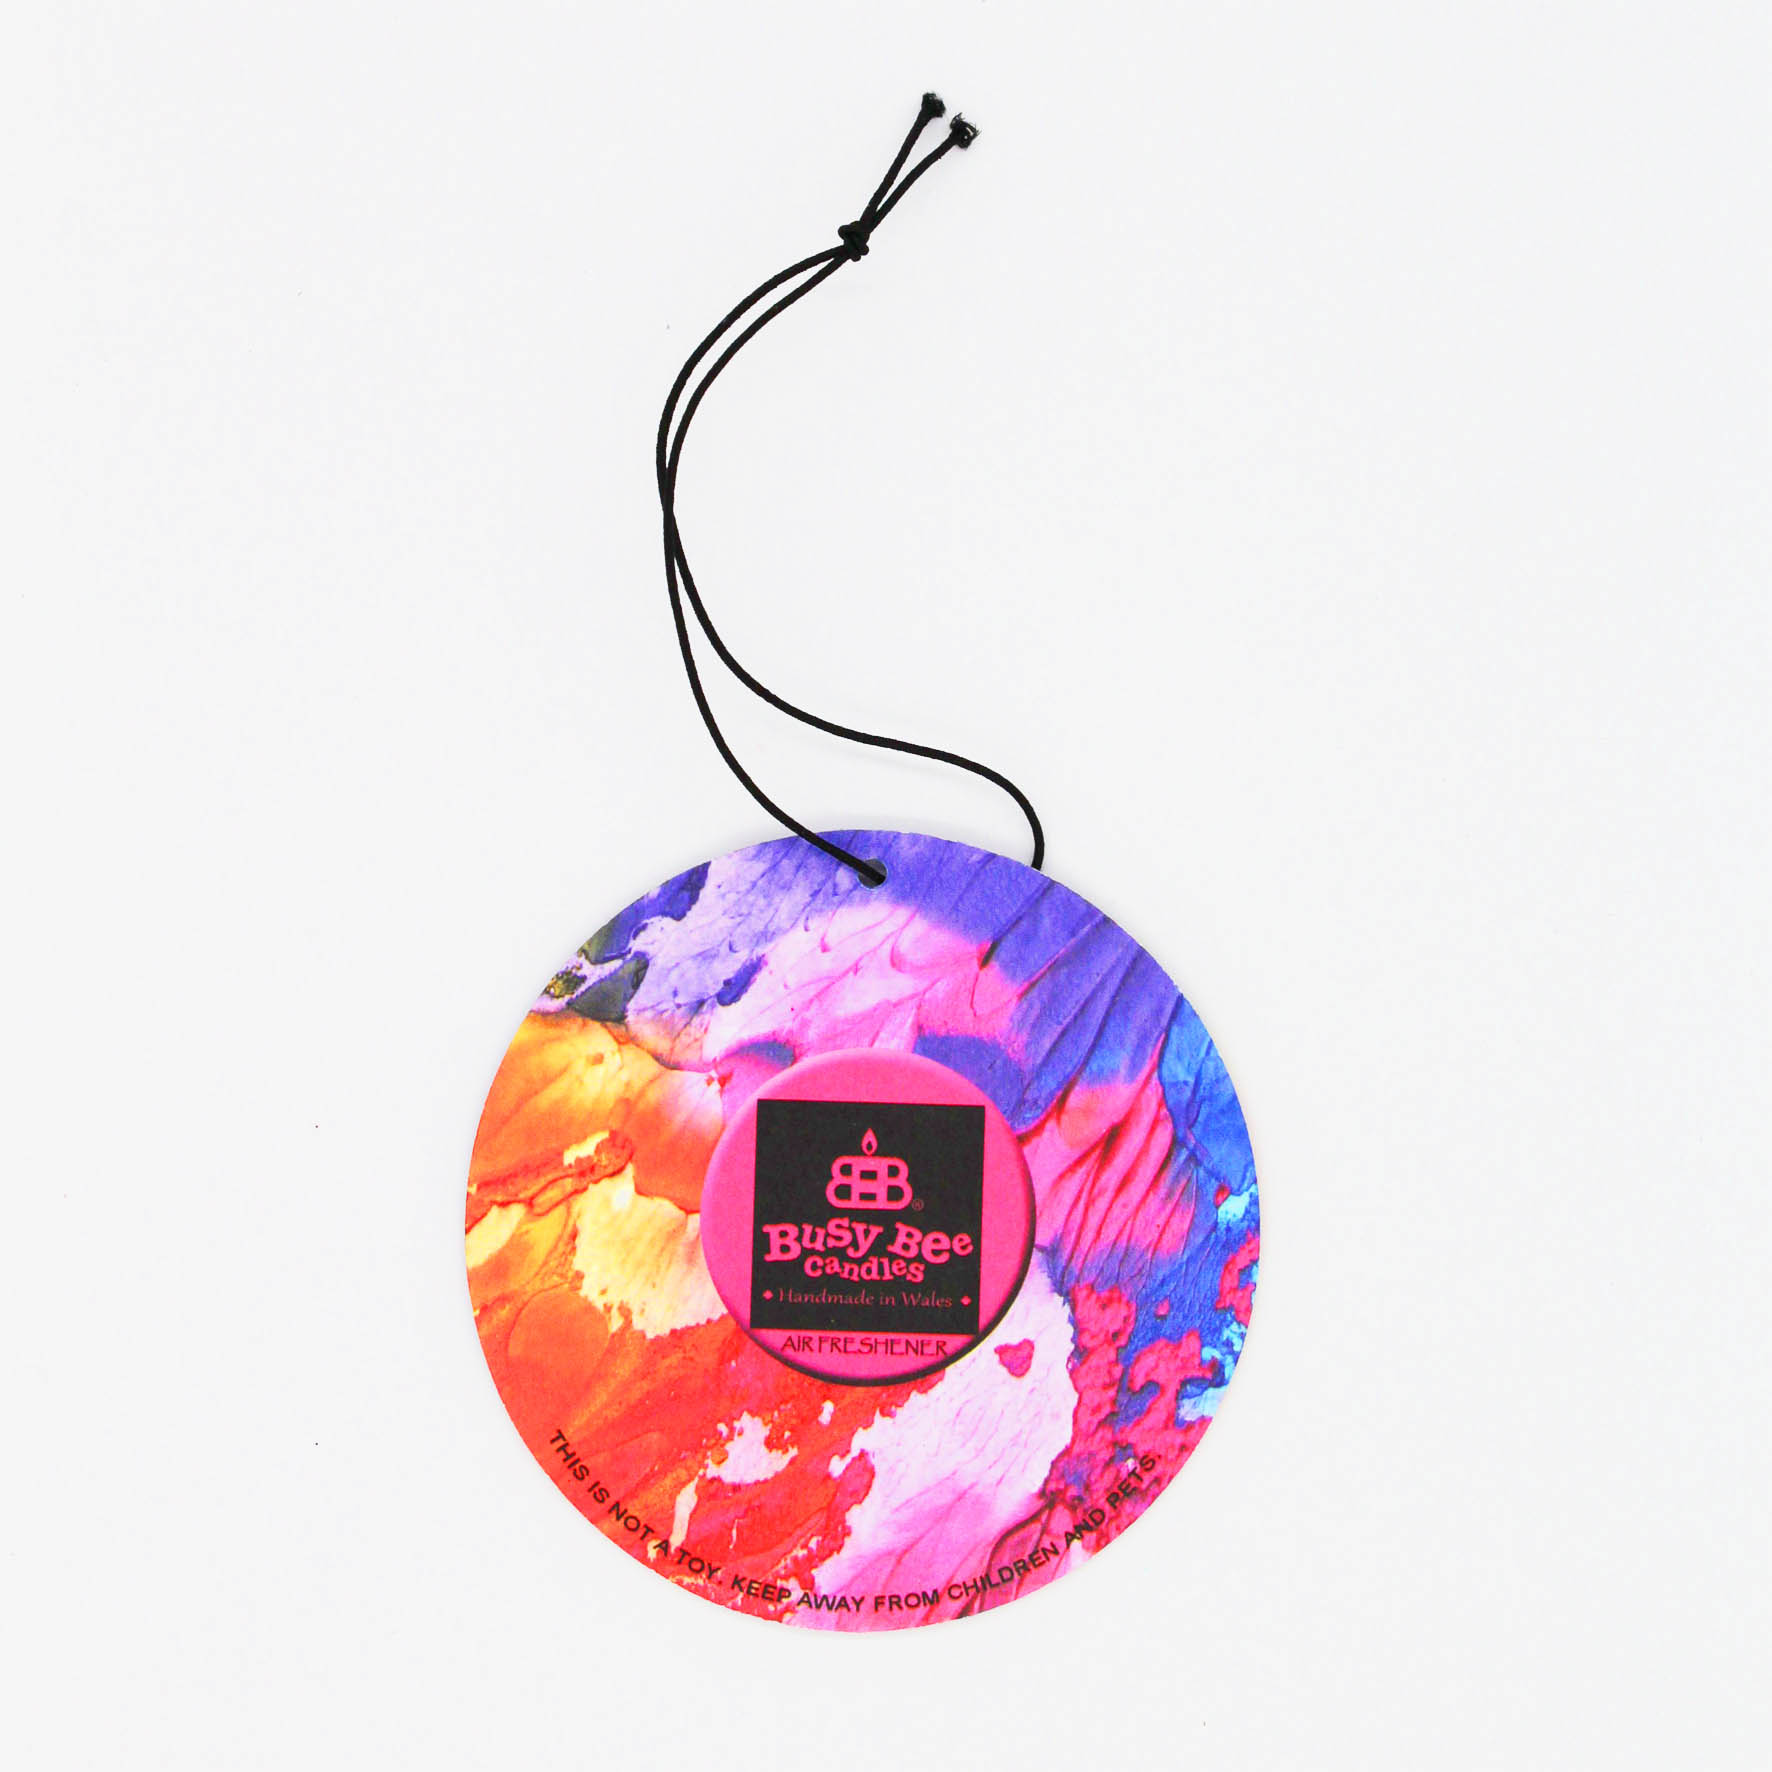 Autumn Glory Hanging Air Freshener